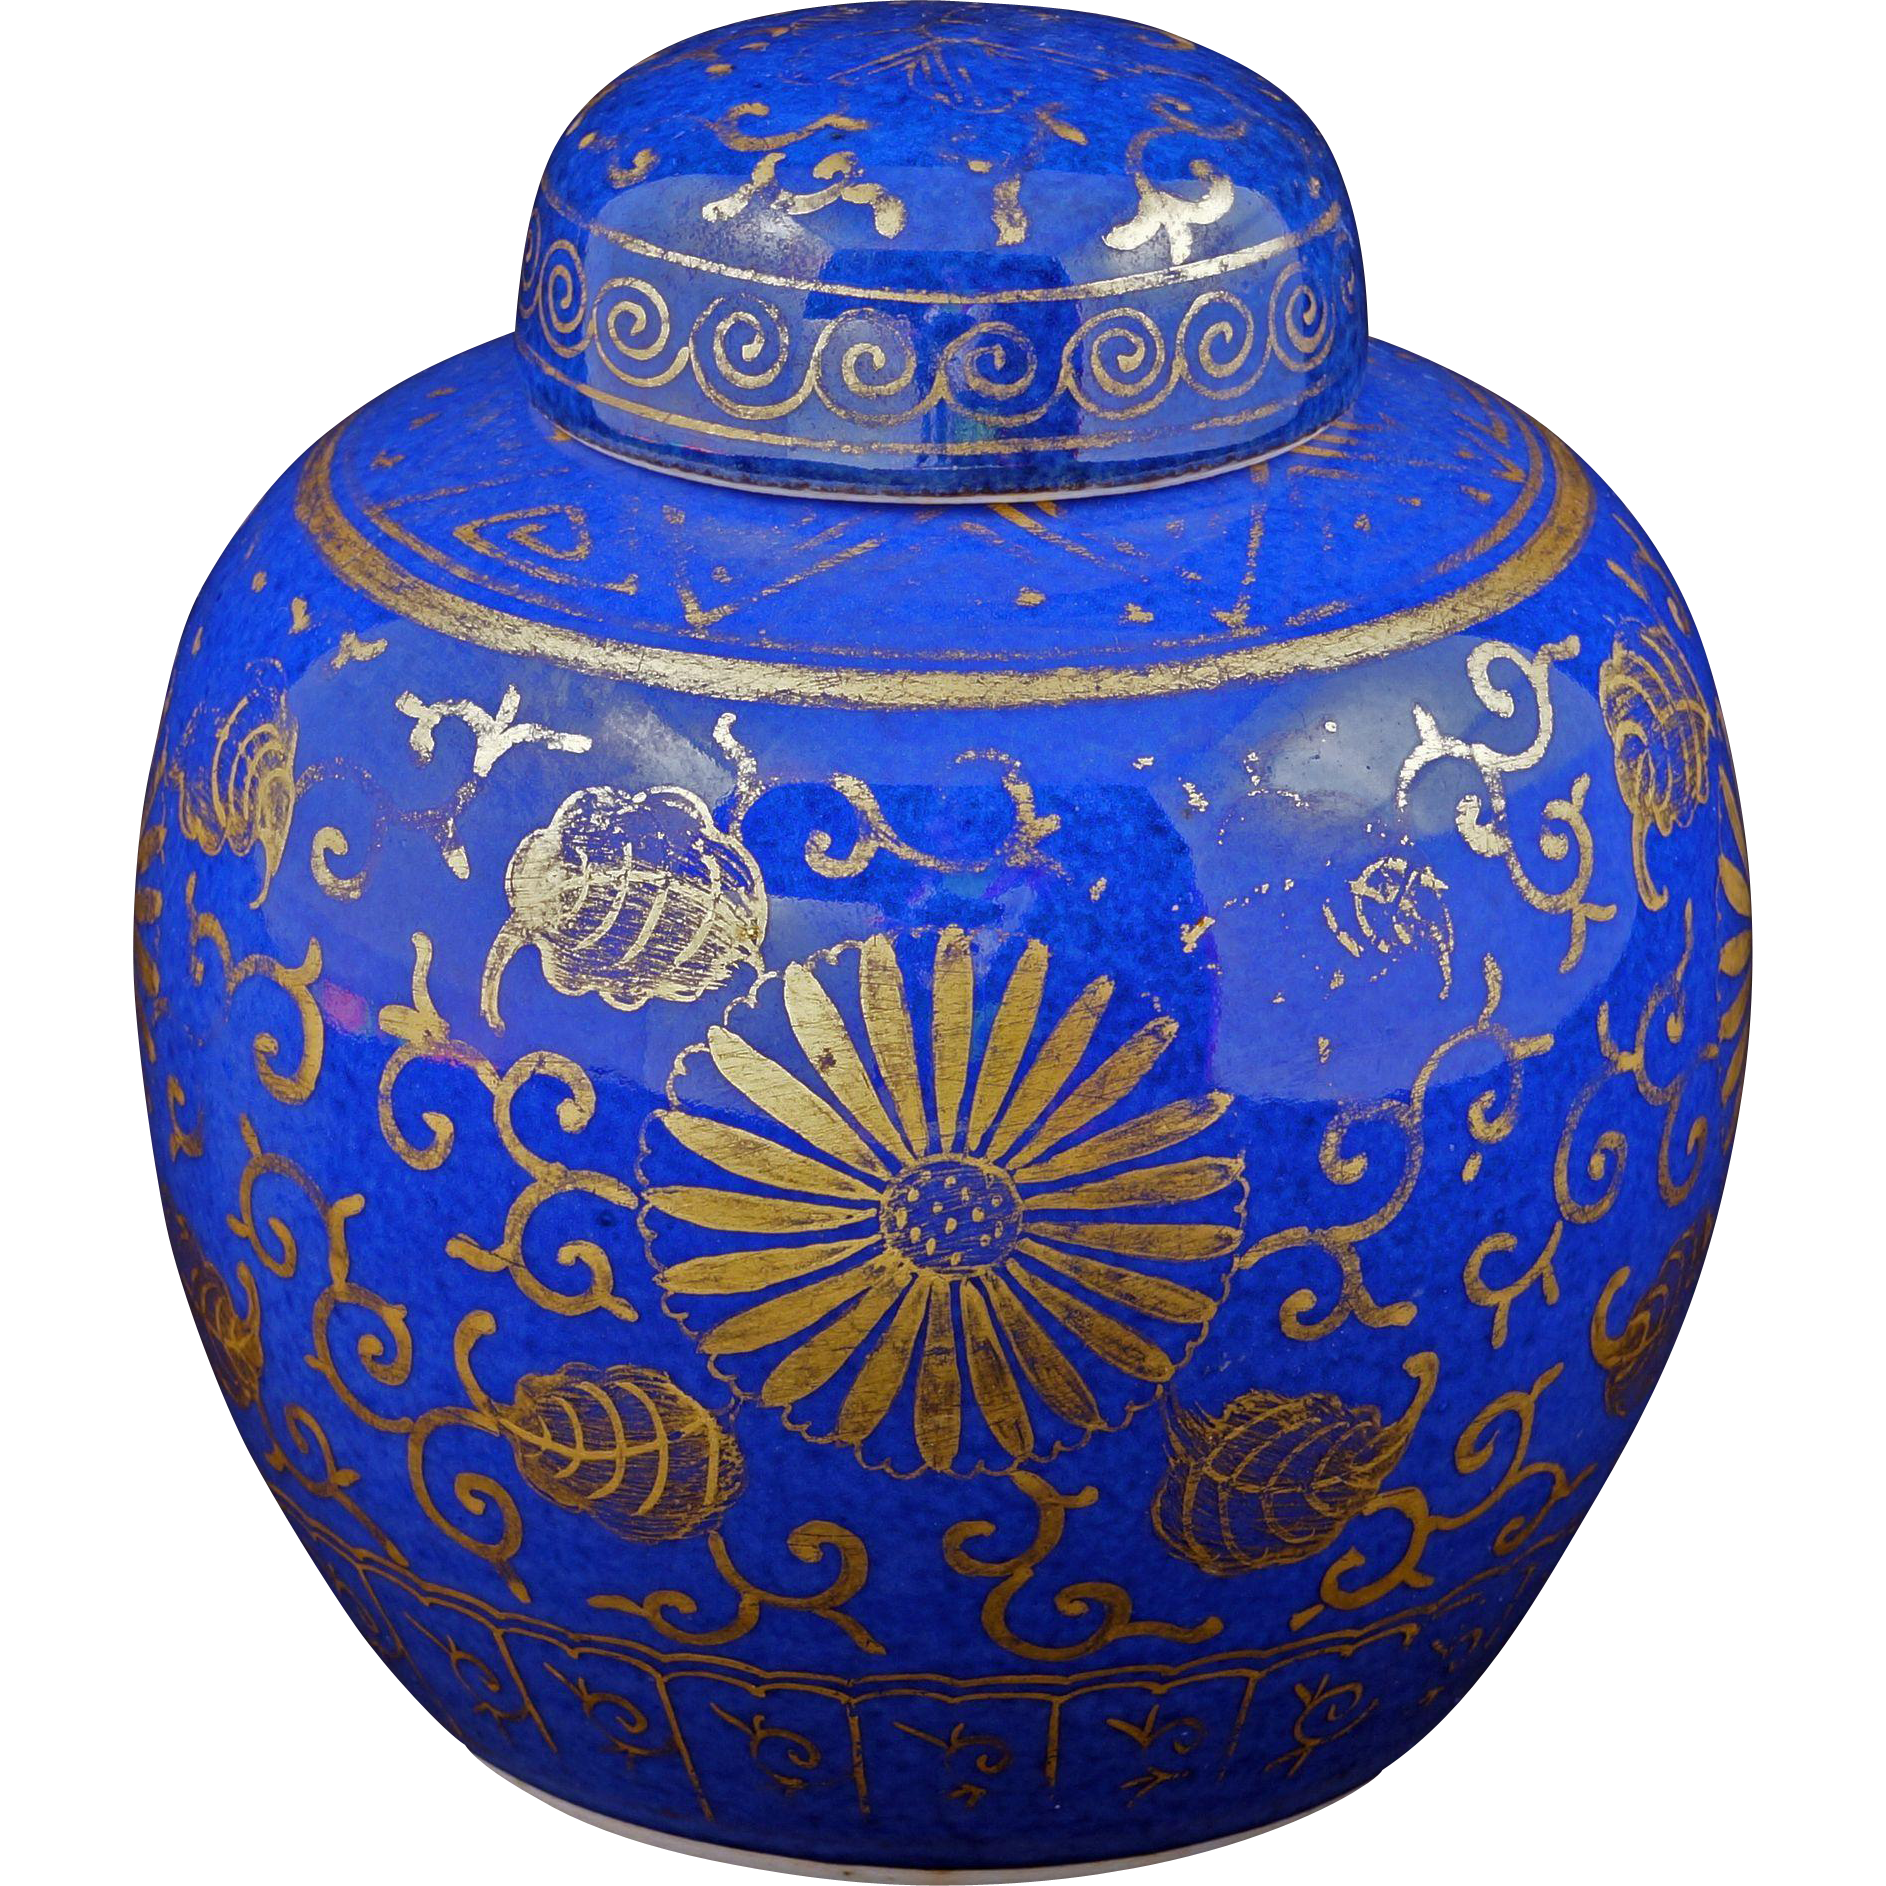 Blue Ginger Jar Part - 23: Chinese Powder Blue Ginger Jar With Gilt Overlay 19th Century